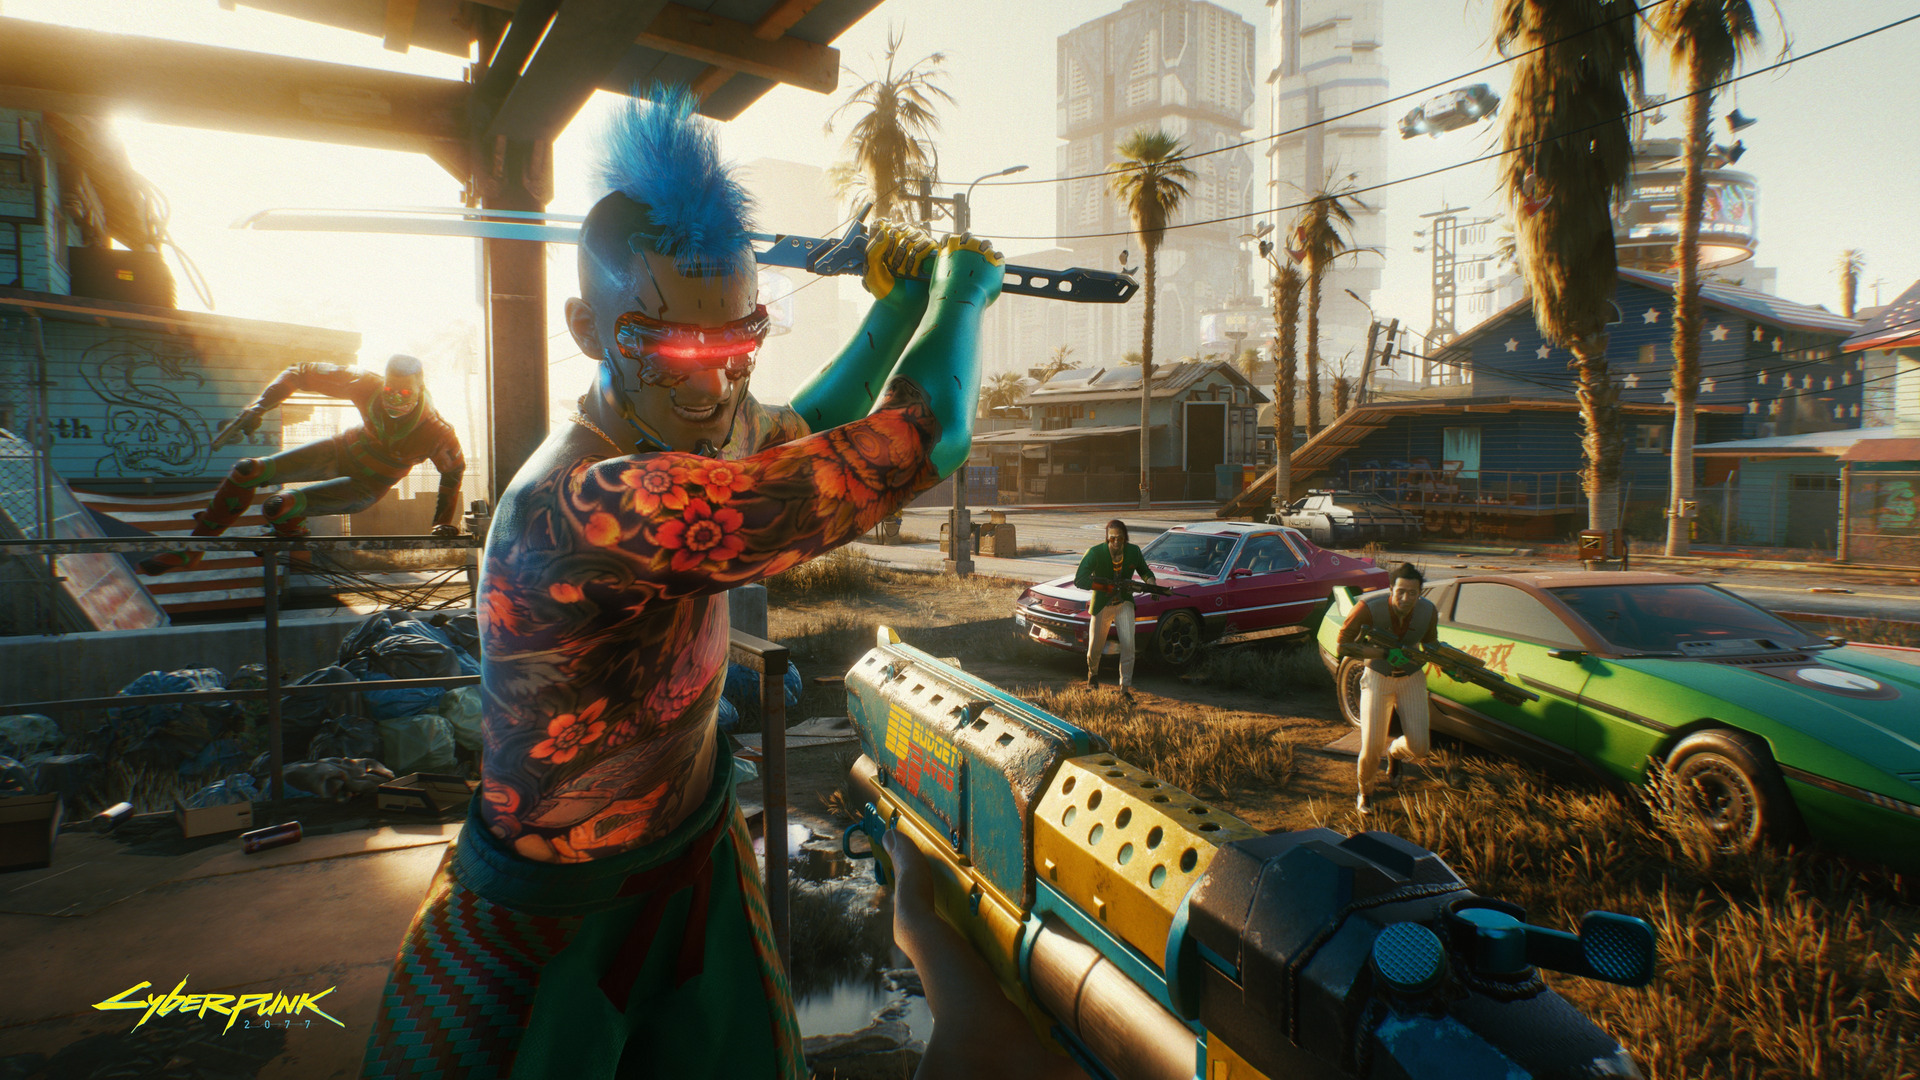 Cyberpunk 2077 - New Screenshots and Official Gameplay Video in 4K